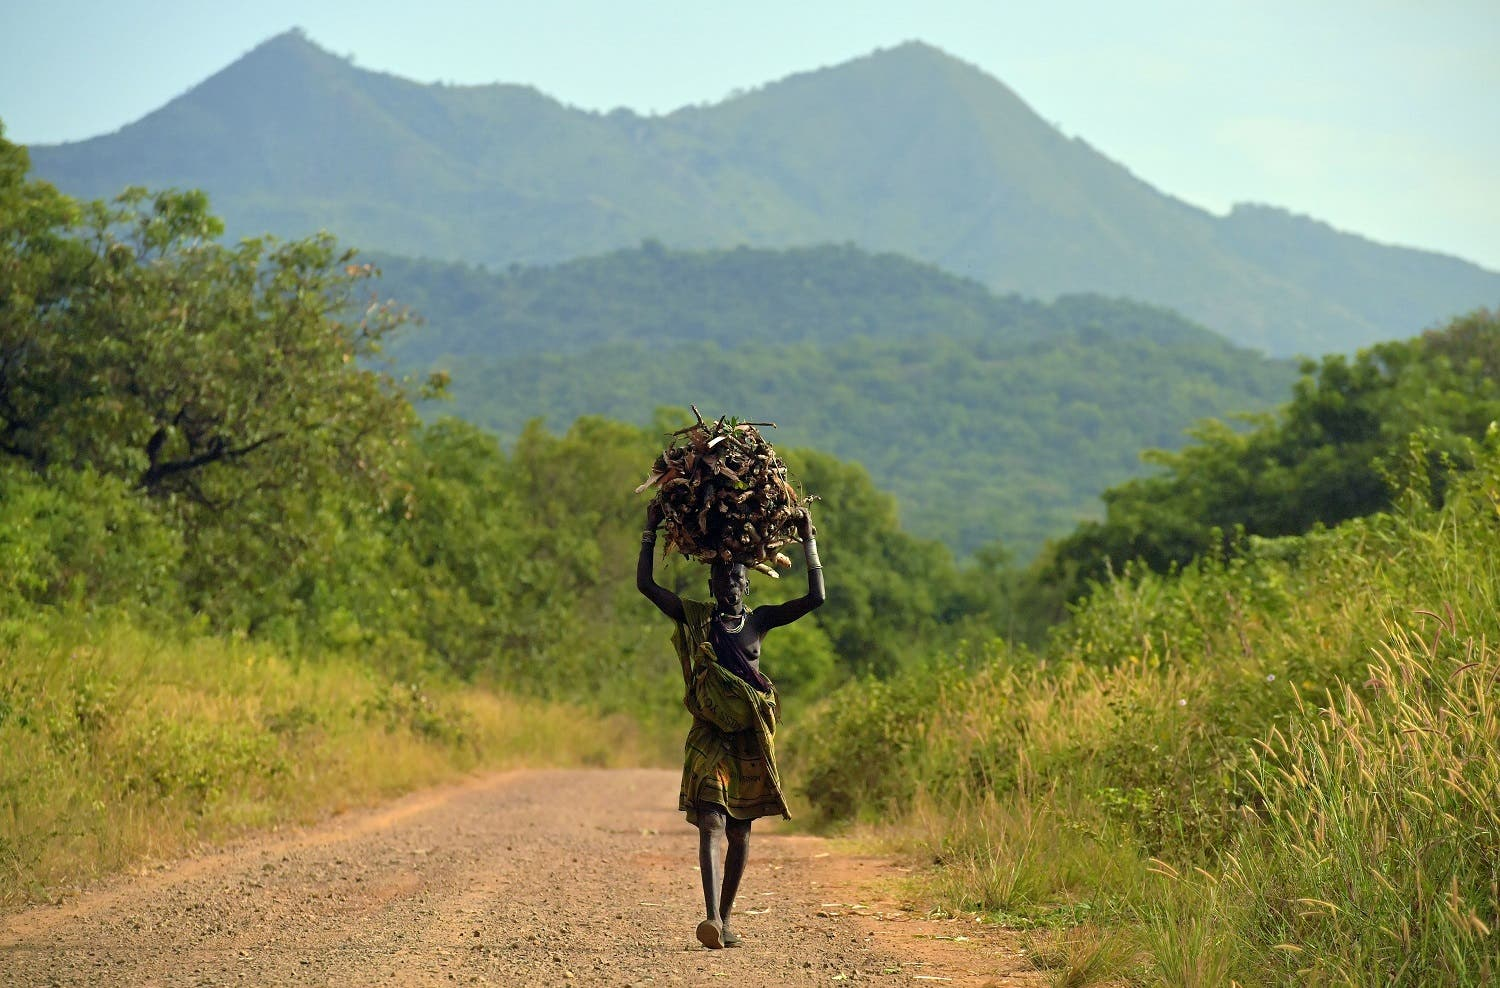 AFP A woman from the Suri tribe carries firewood on her head in Ethiopia's southern Omo Valley region, near Kibbish Ethiopia.